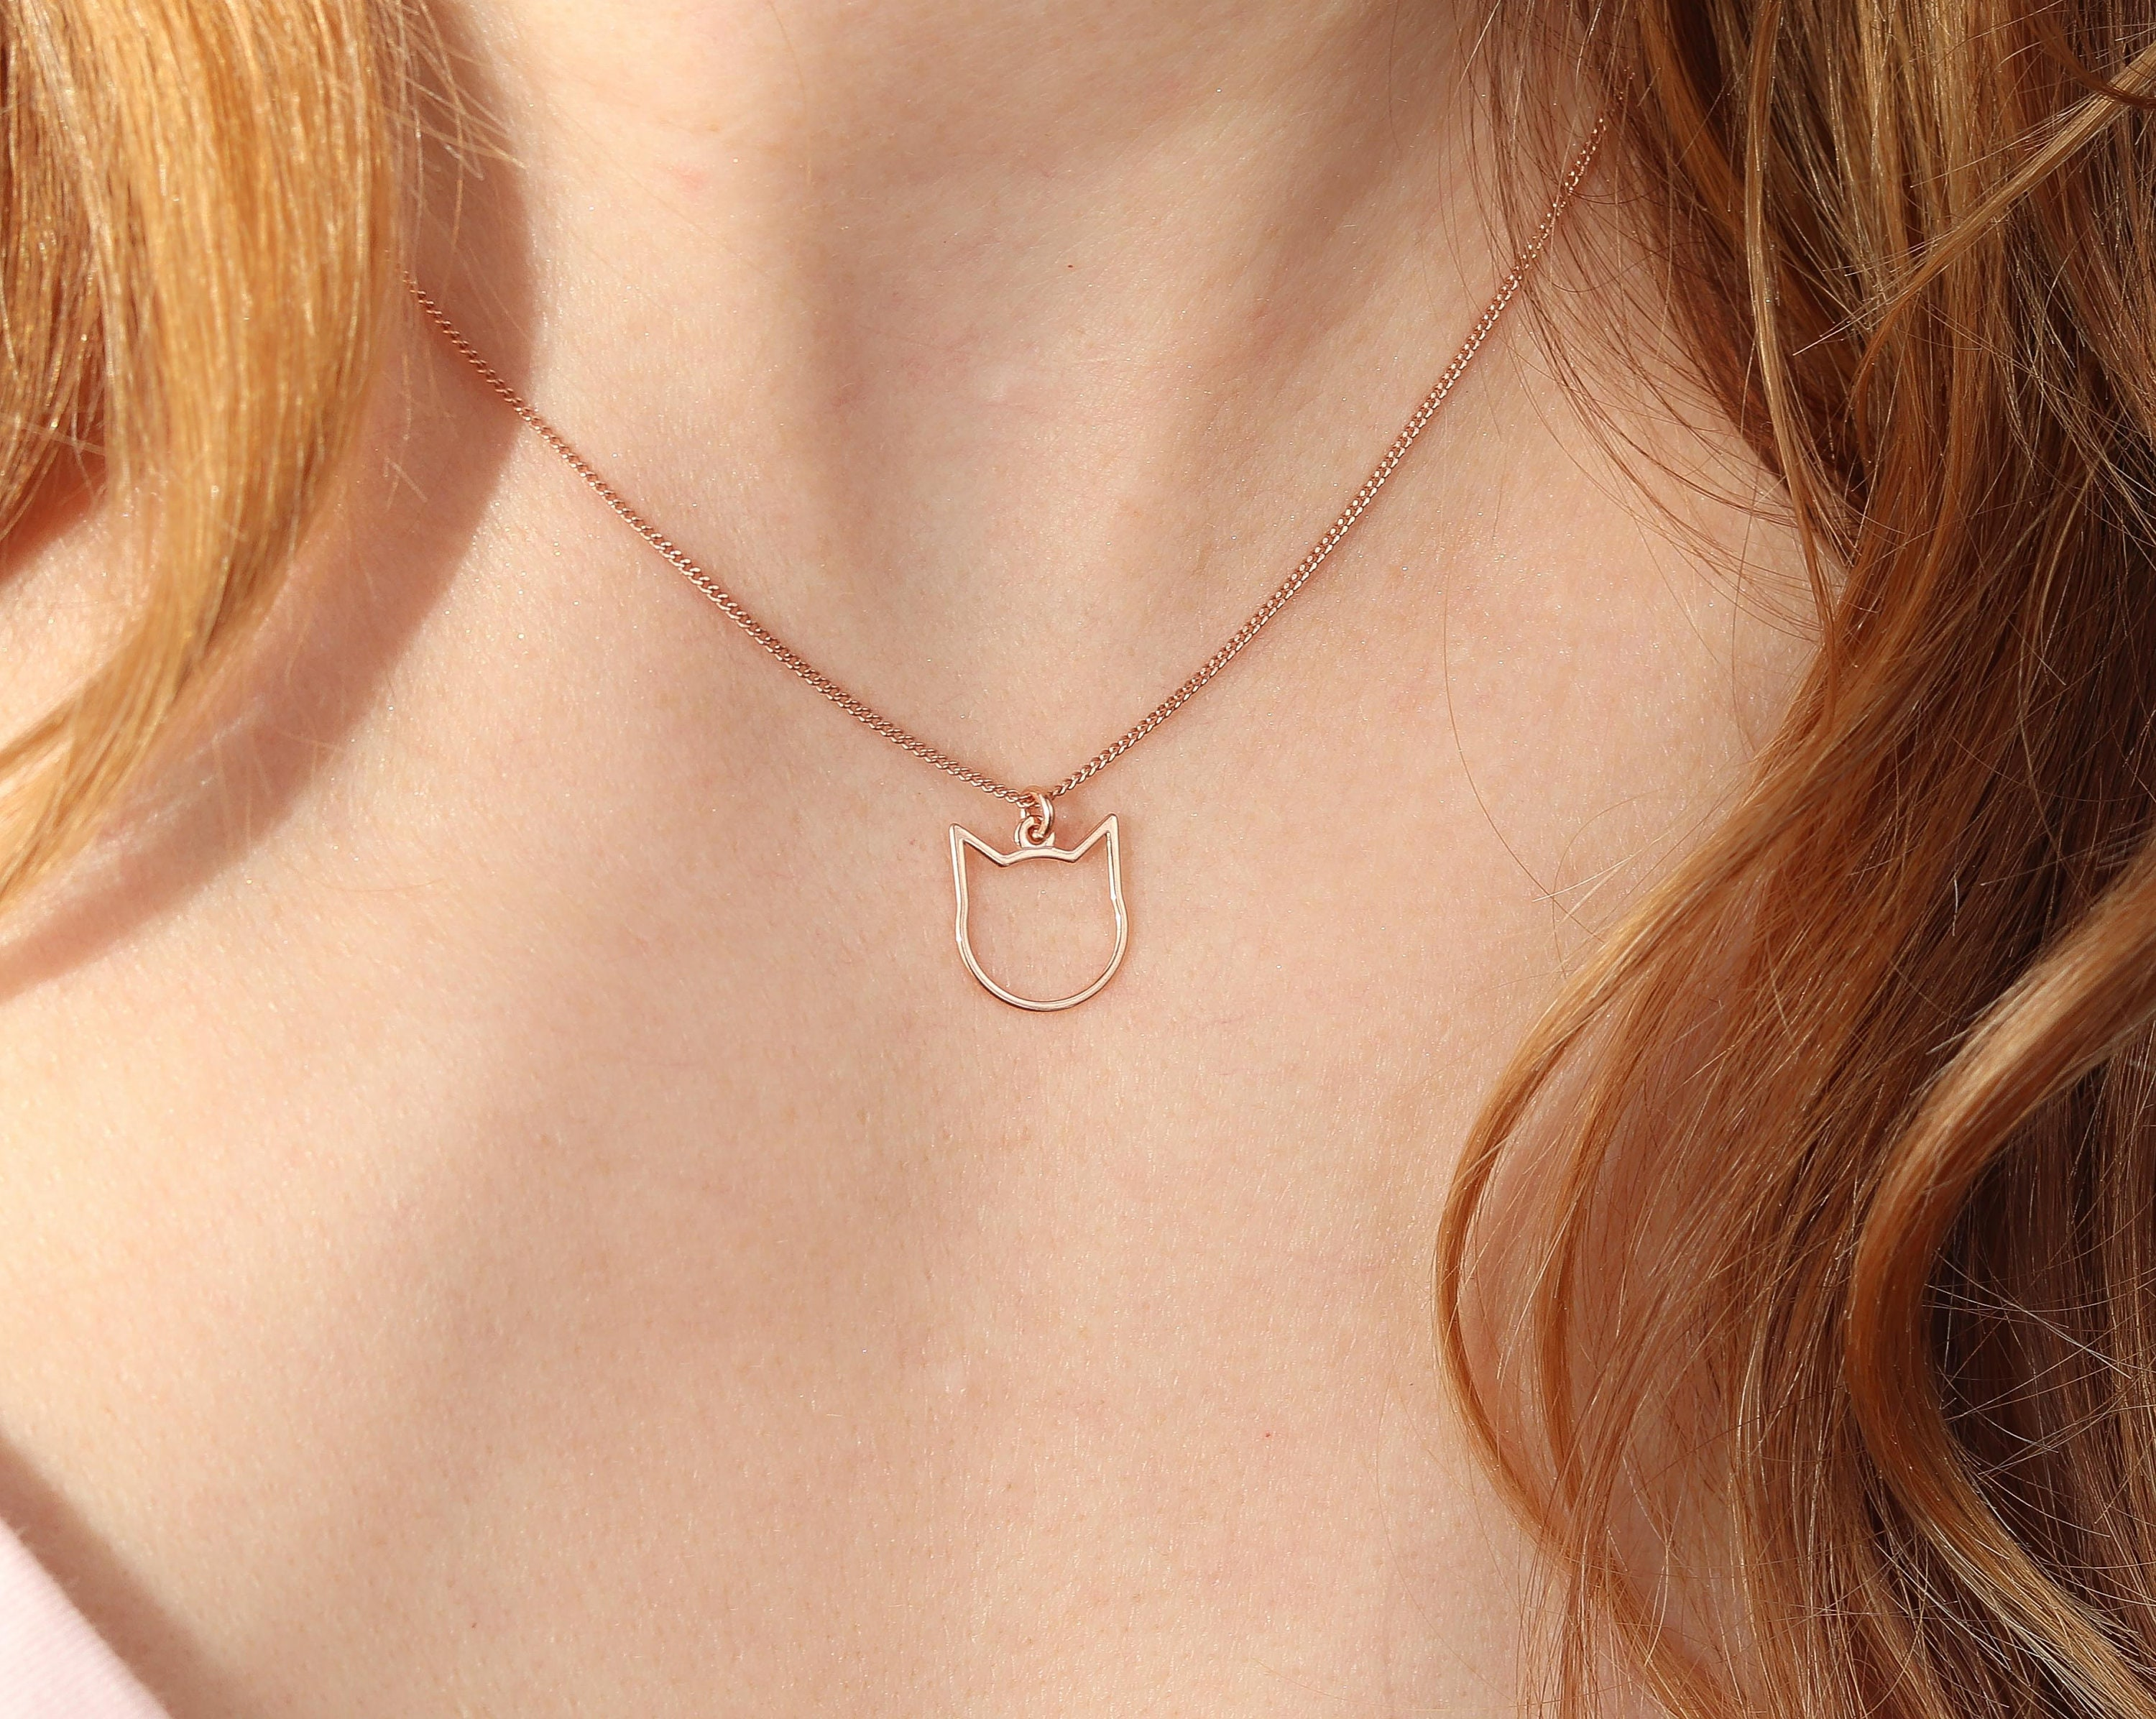 14K Rose Gold-plated 925 Silver Lil Sis Pendant with 16 Necklace Jewels Obsession Lil Sis Necklace